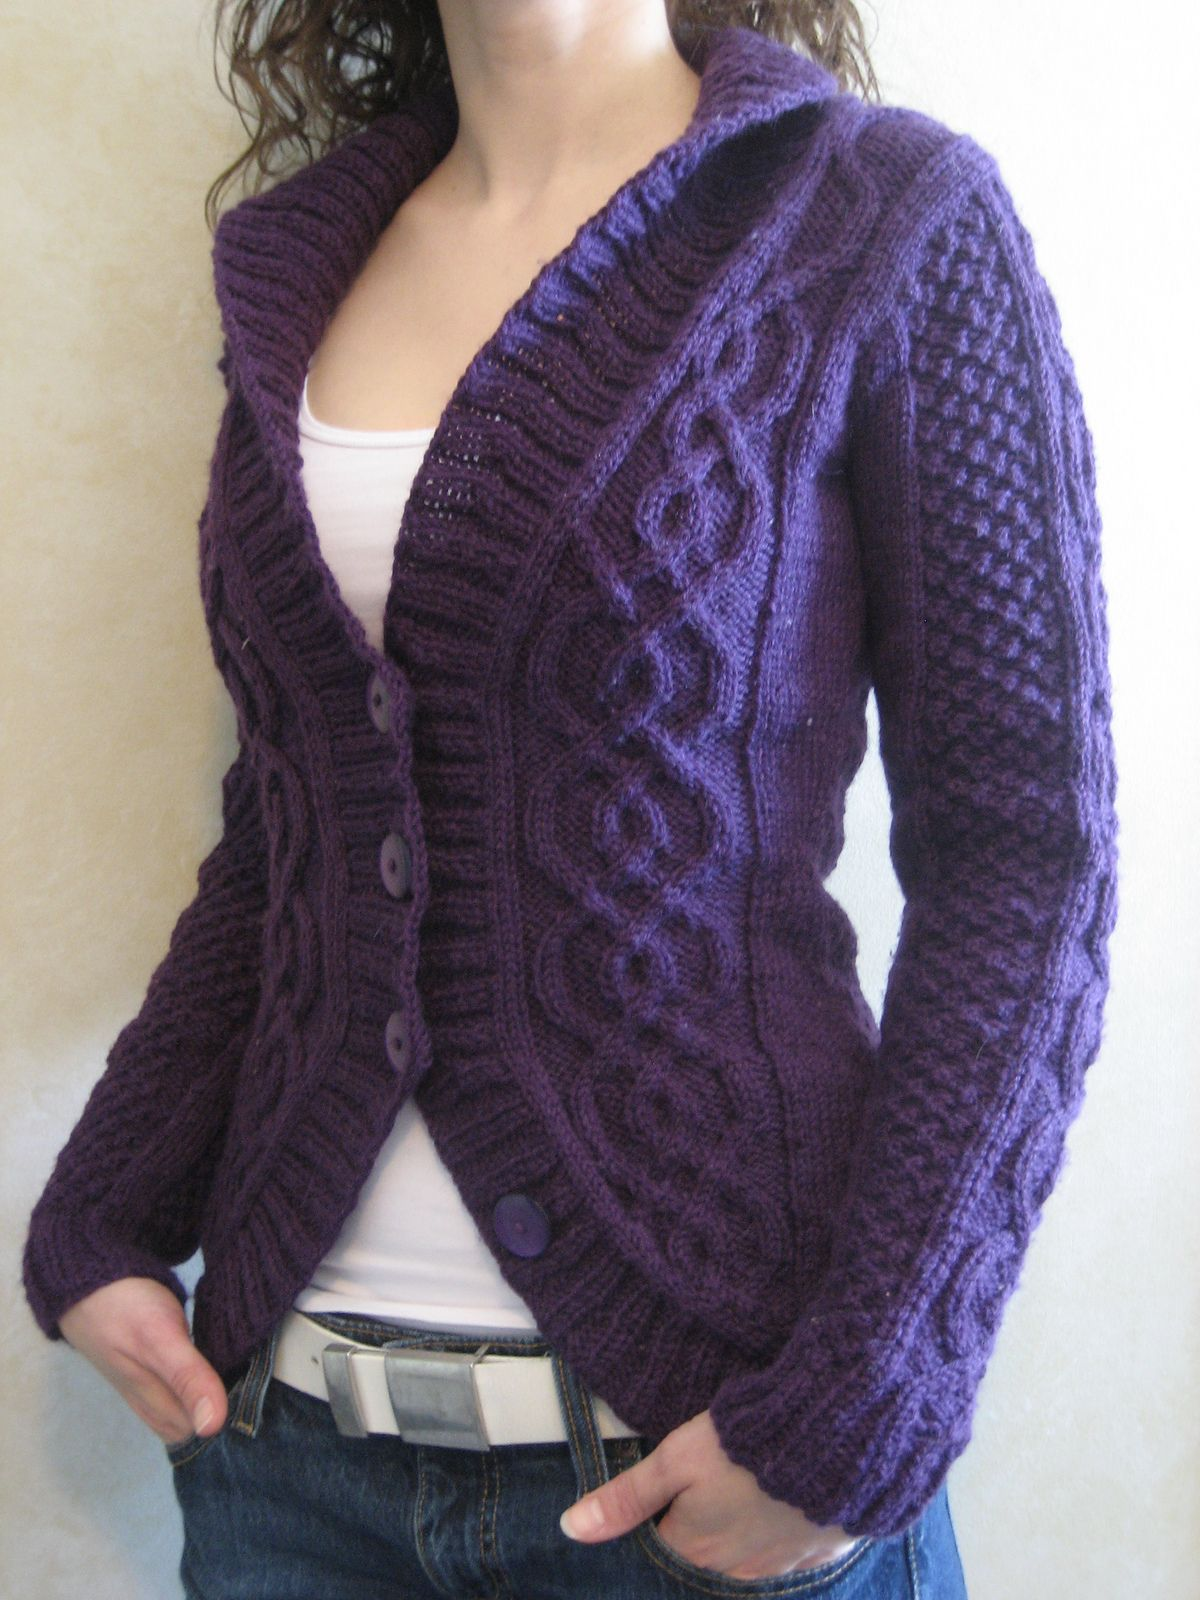 Blackberry Cabled Cardigan Pattern By Alexandra Charlotte